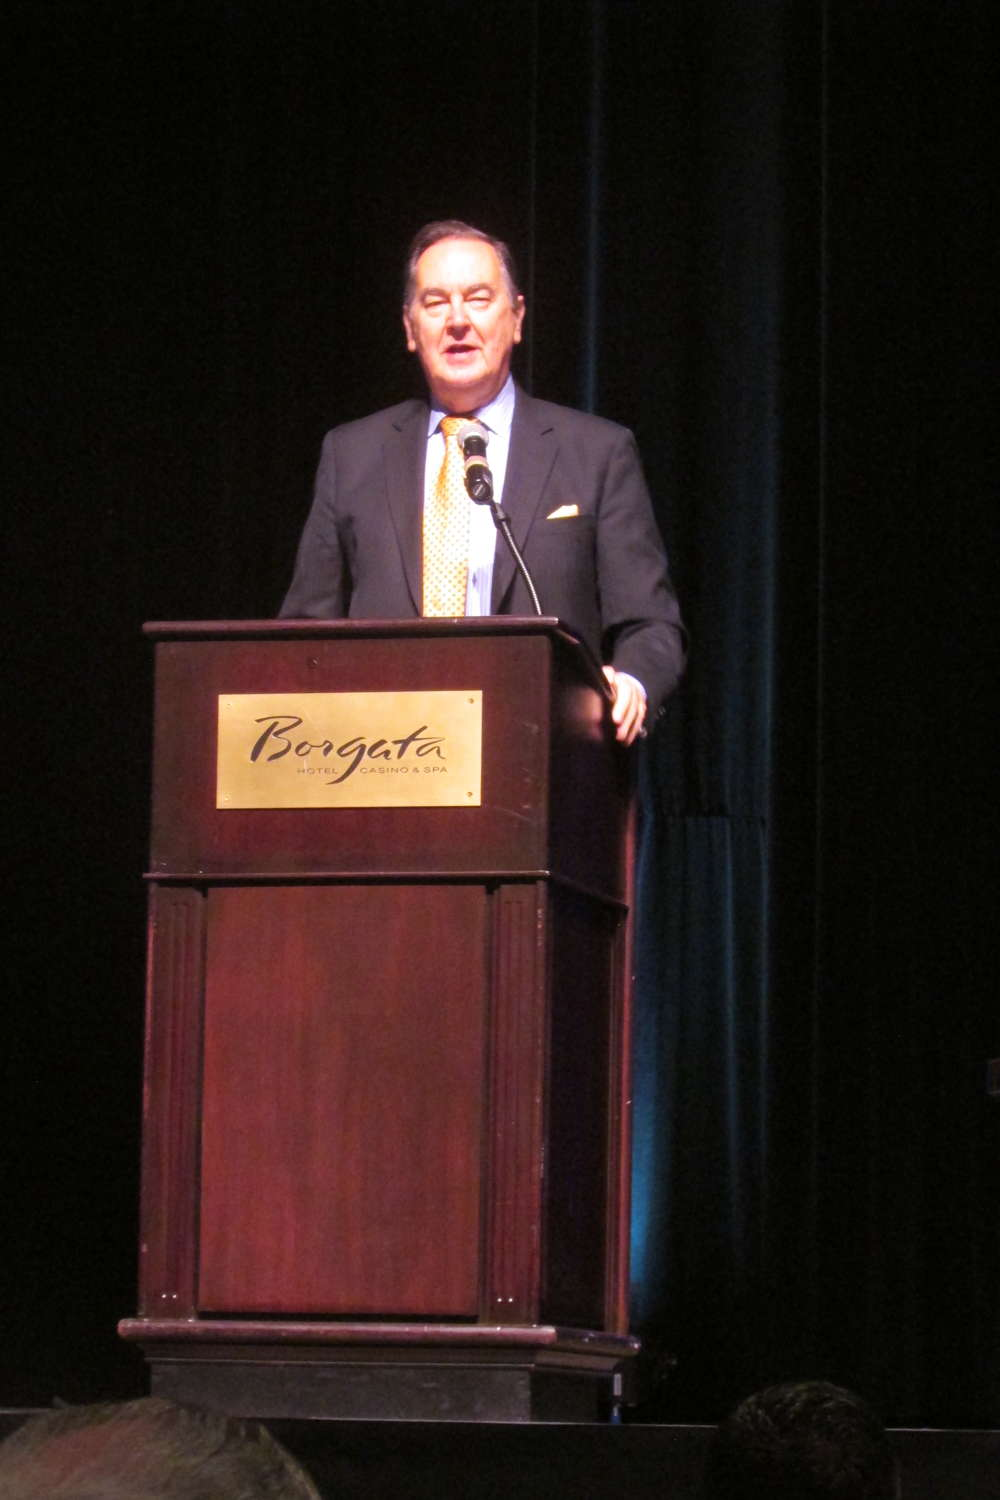 Cal Thomas, syndicated conservative political columnist and analyst, addresses UTCA attendees during the Keynote luncheon.